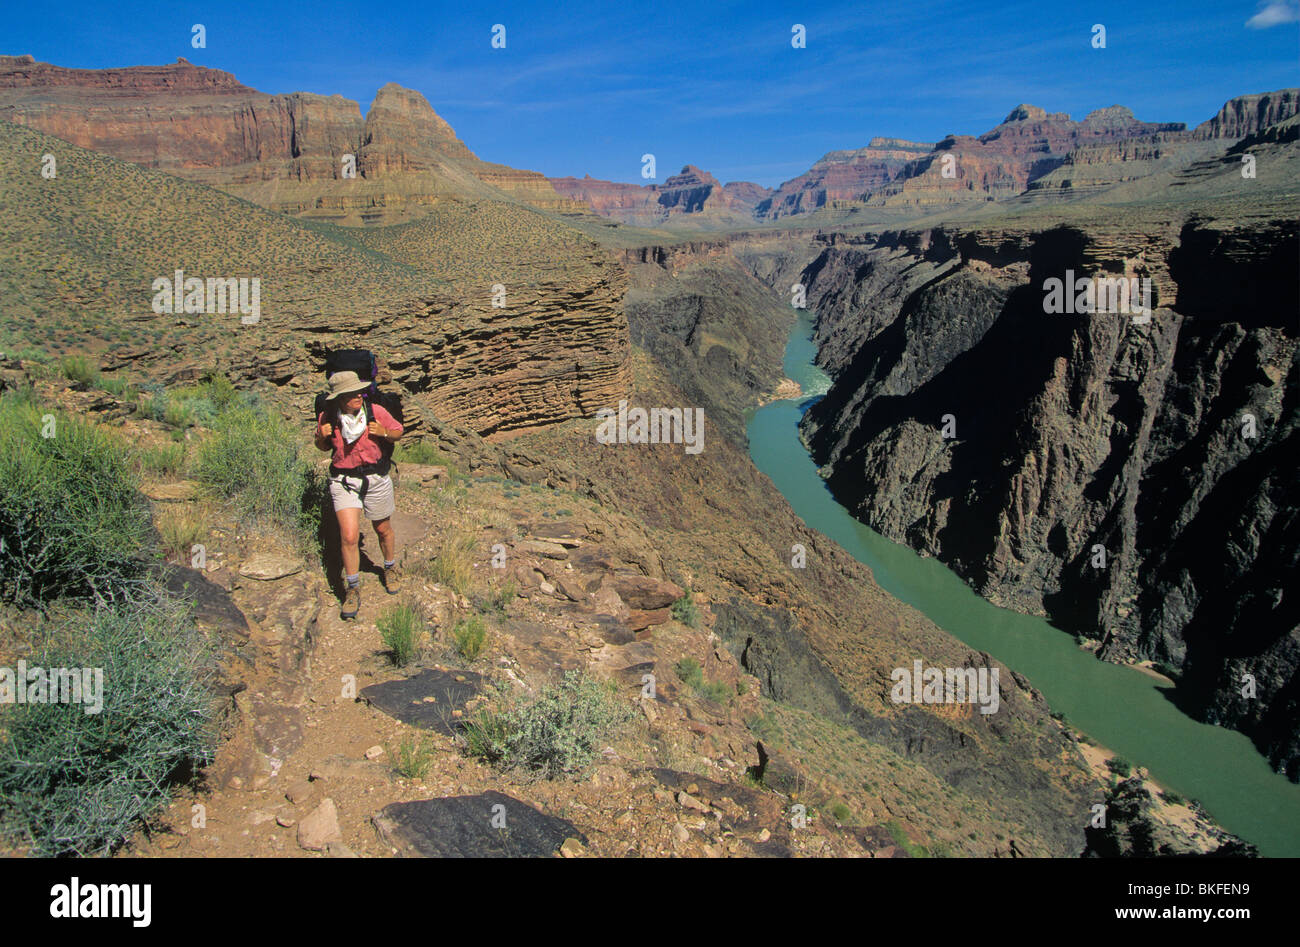 Backpacking on Tonto Trail in the Travertine Canyon area, Grand Canyon National Park, Arizona, USA - Stock Image